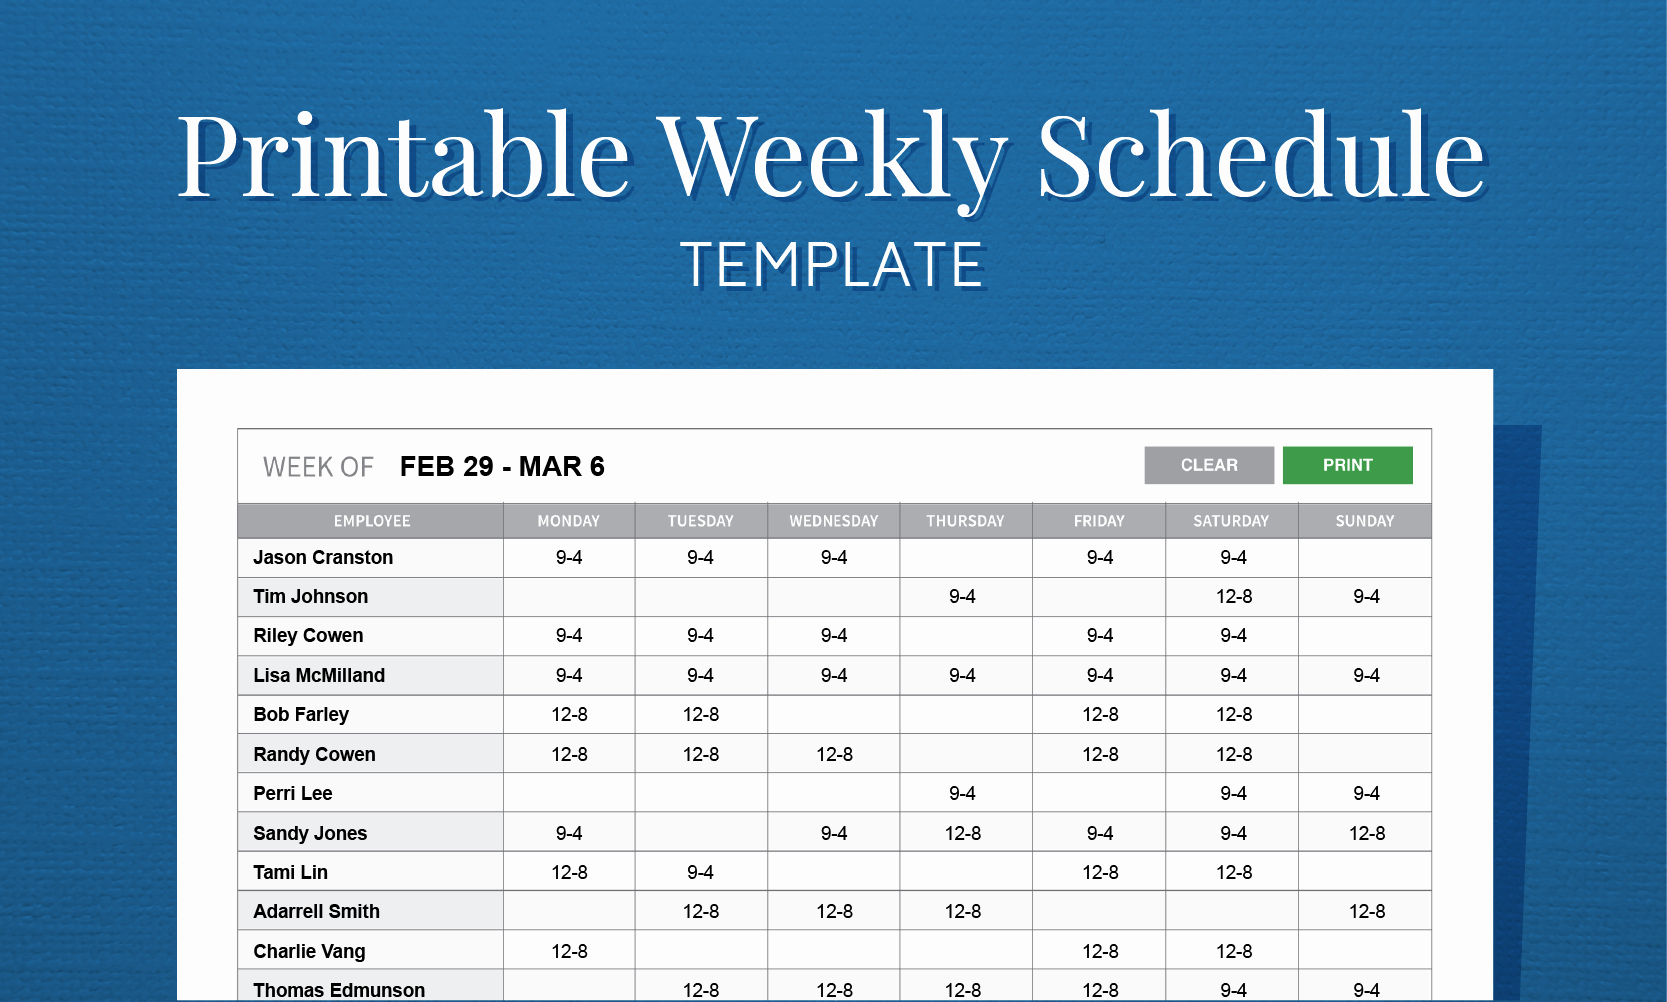 Employee Lunch Schedule Template New Free Printable Weekly Work Schedule Template for Employee